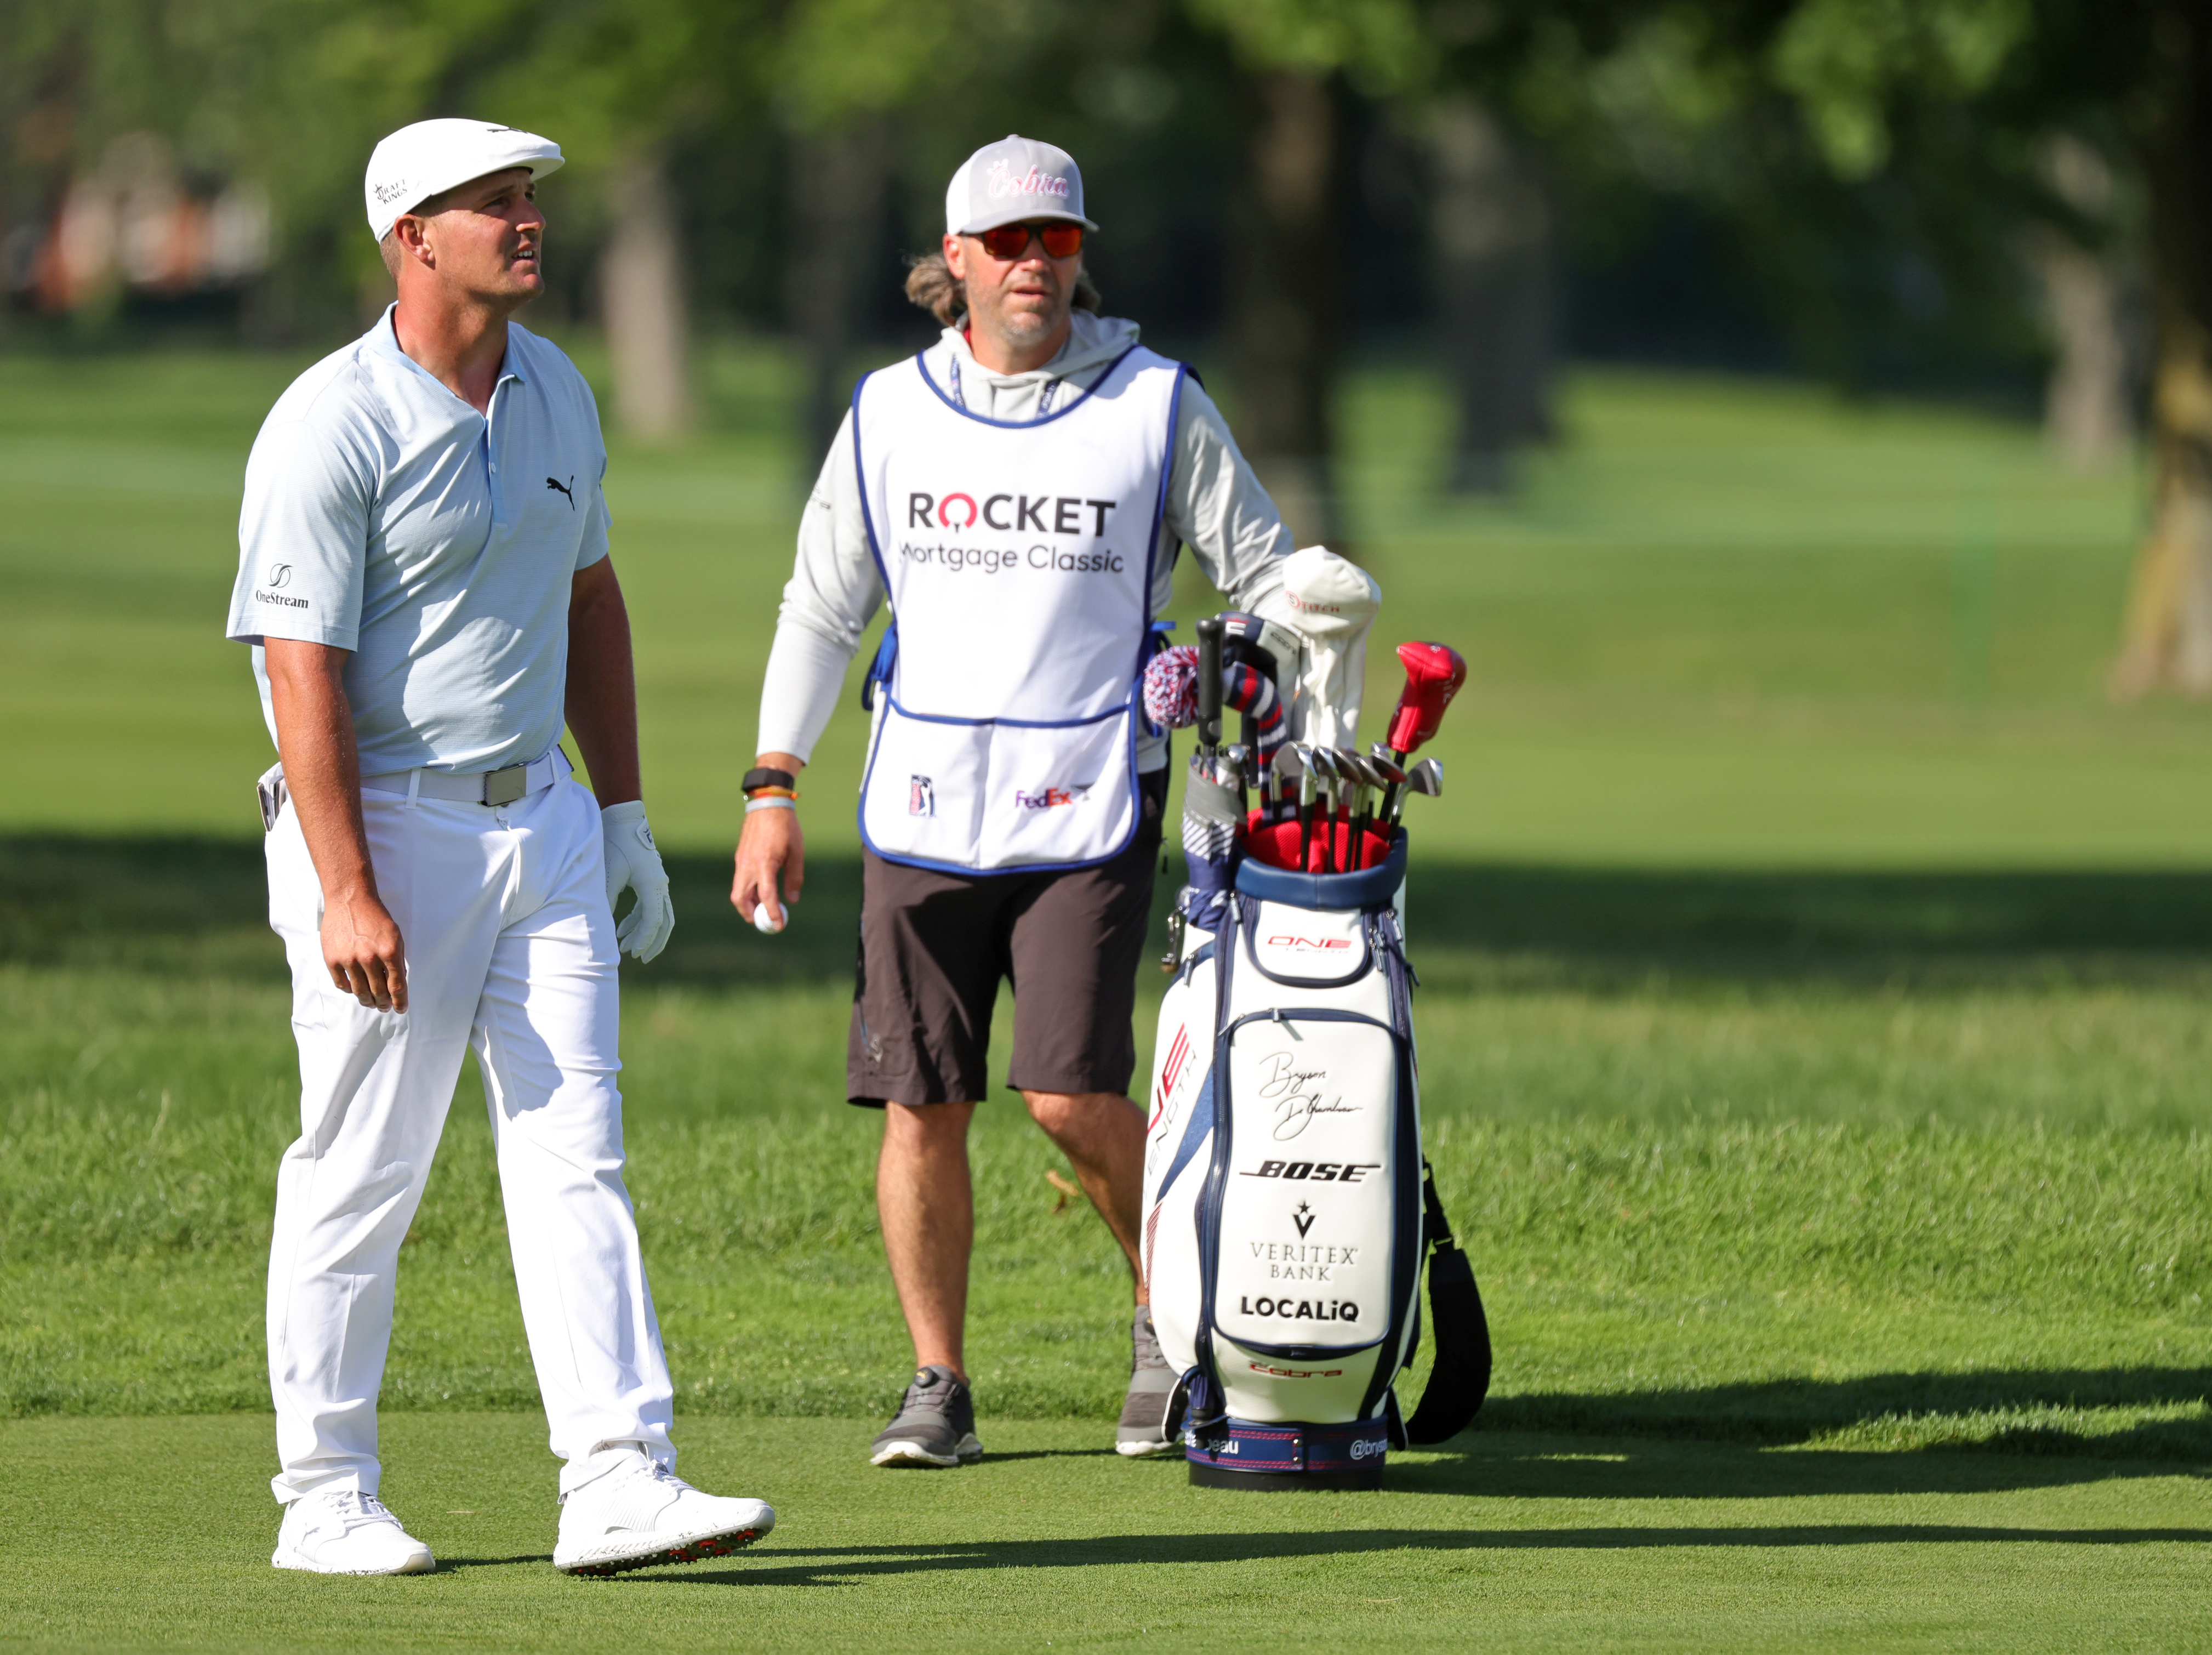 Bryson DeChambeau and caddie Ben Schomin prepare to play a shot during the second round of the Rocket Mortgage Classic on July 02, 2021 at the Detroit Golf Club in Detroit, Michigan.